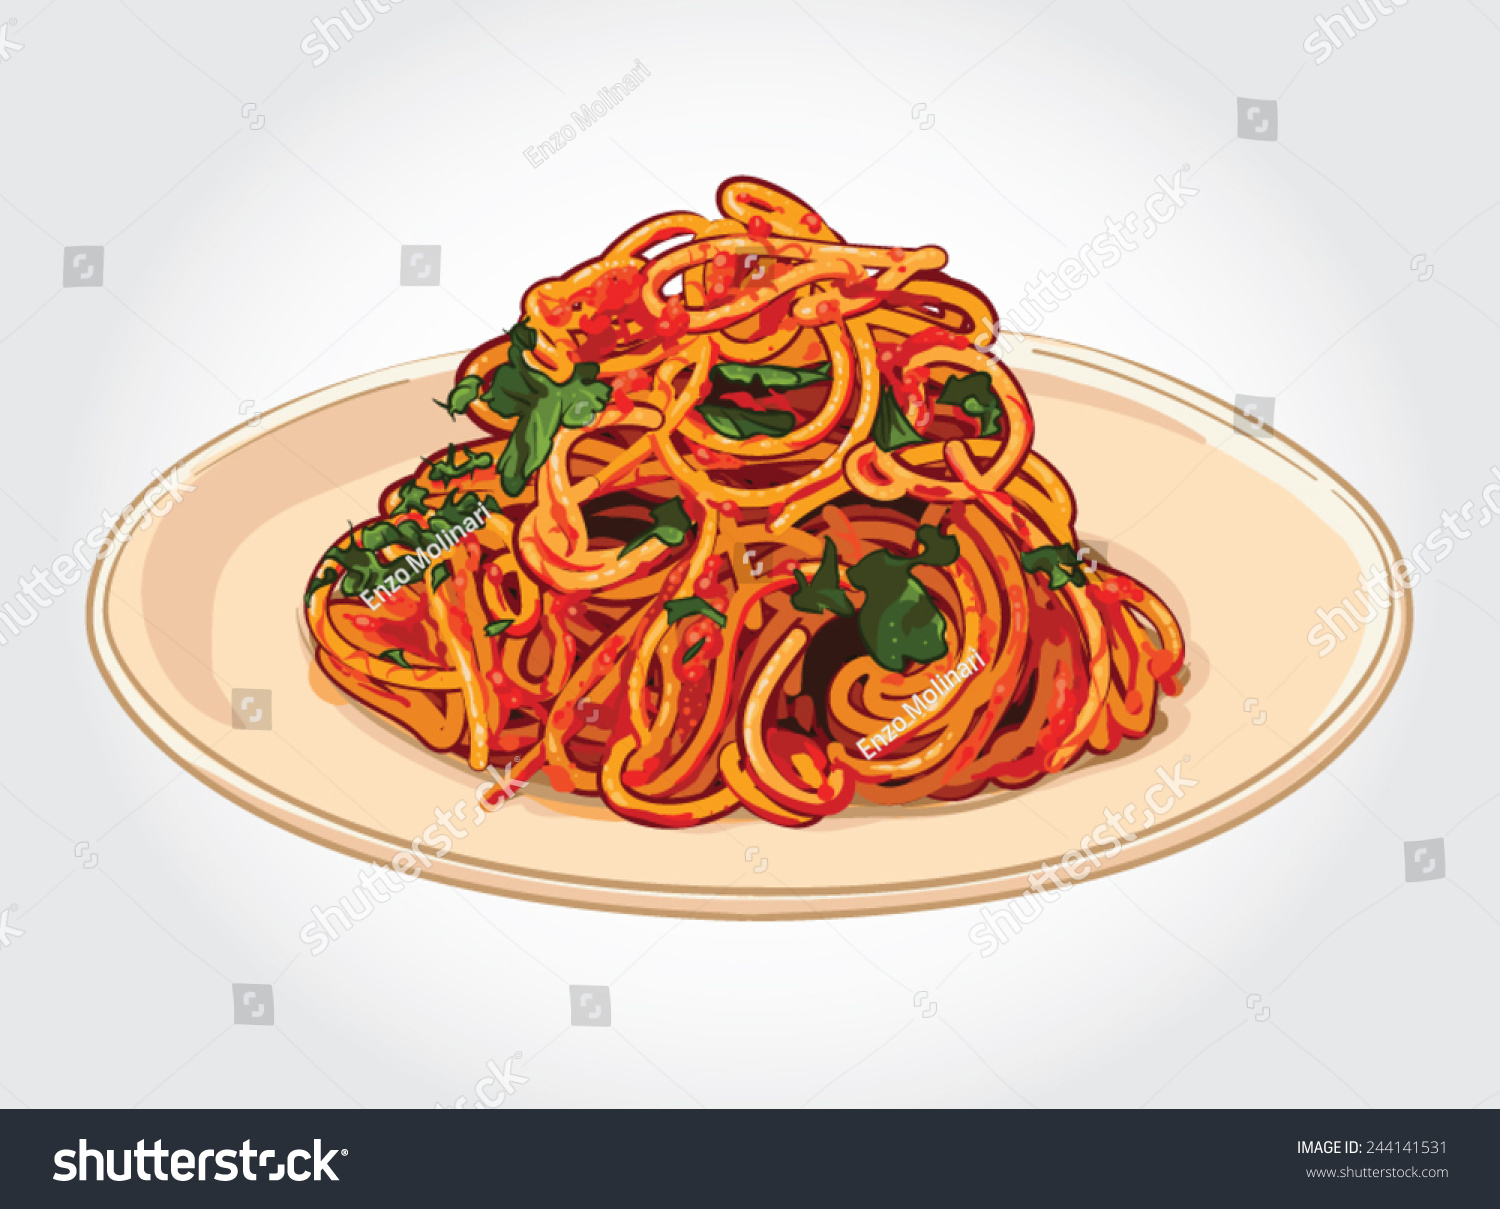 Plate Of Spaghetti Clipart spaghetti plate stock photos, images ...